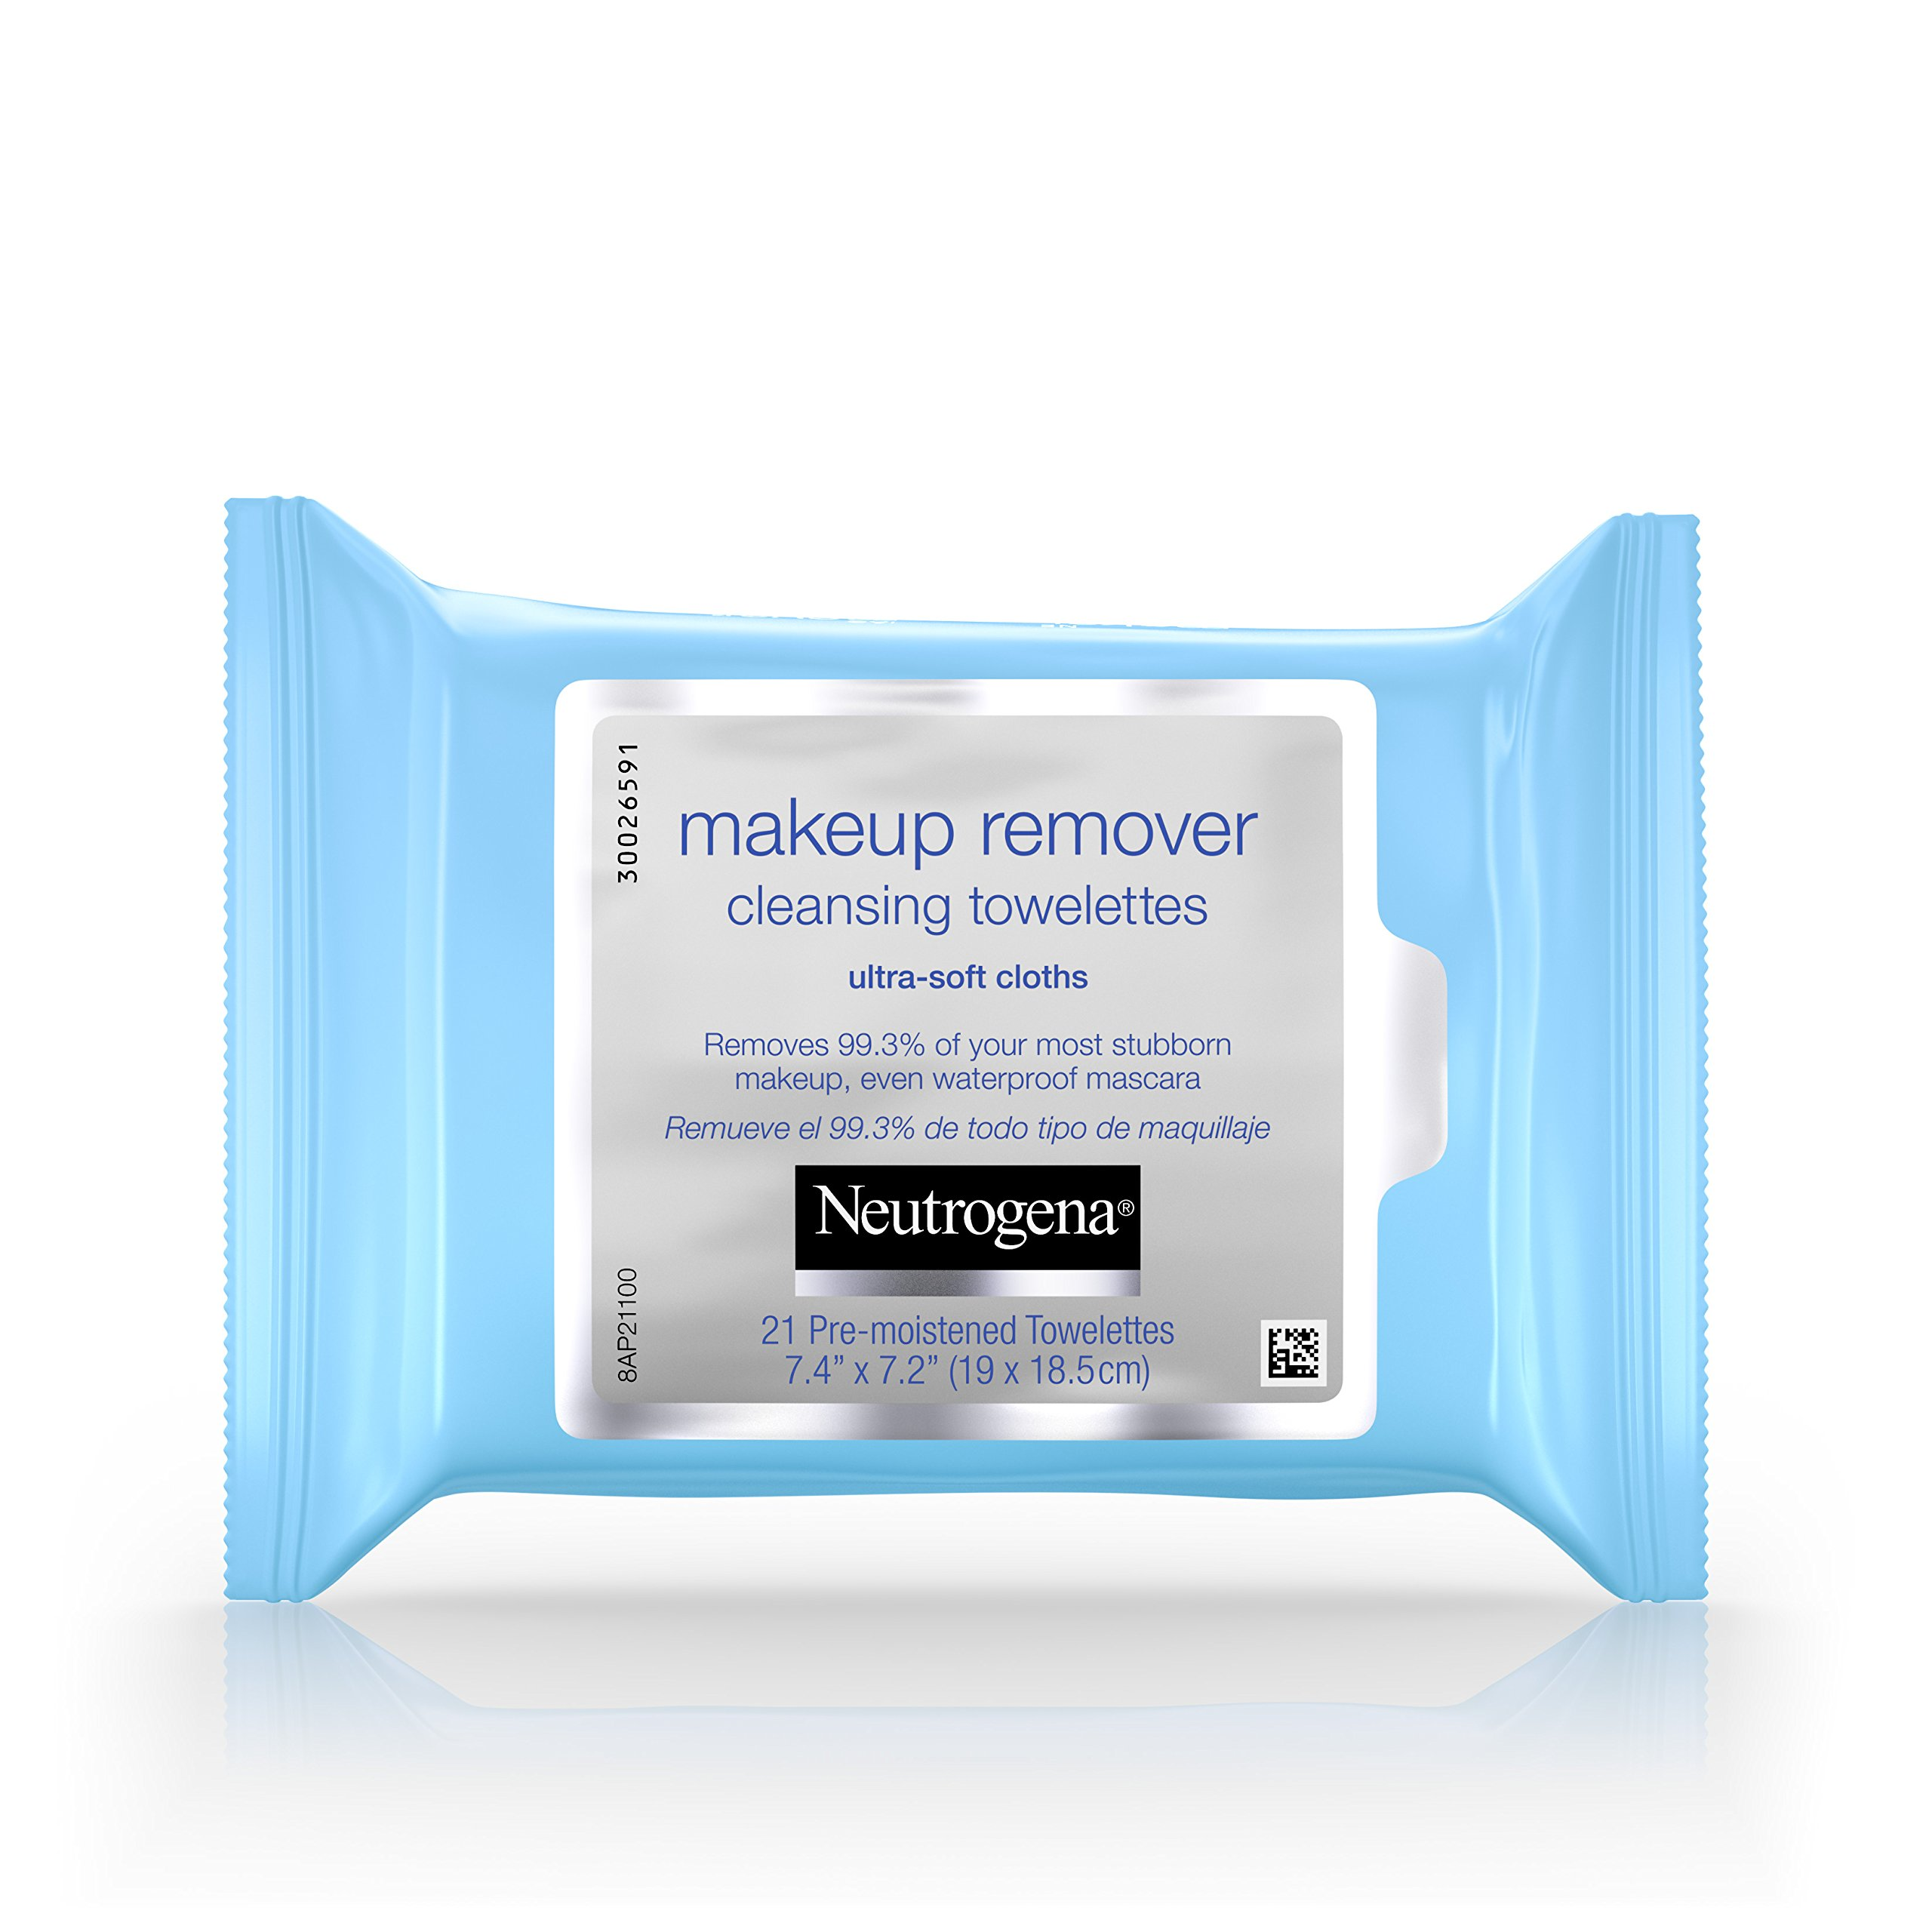 Neutrogena Makeup Remover Cleansing Towelettes & Wipes, (Pack of 3) by Neutrogena